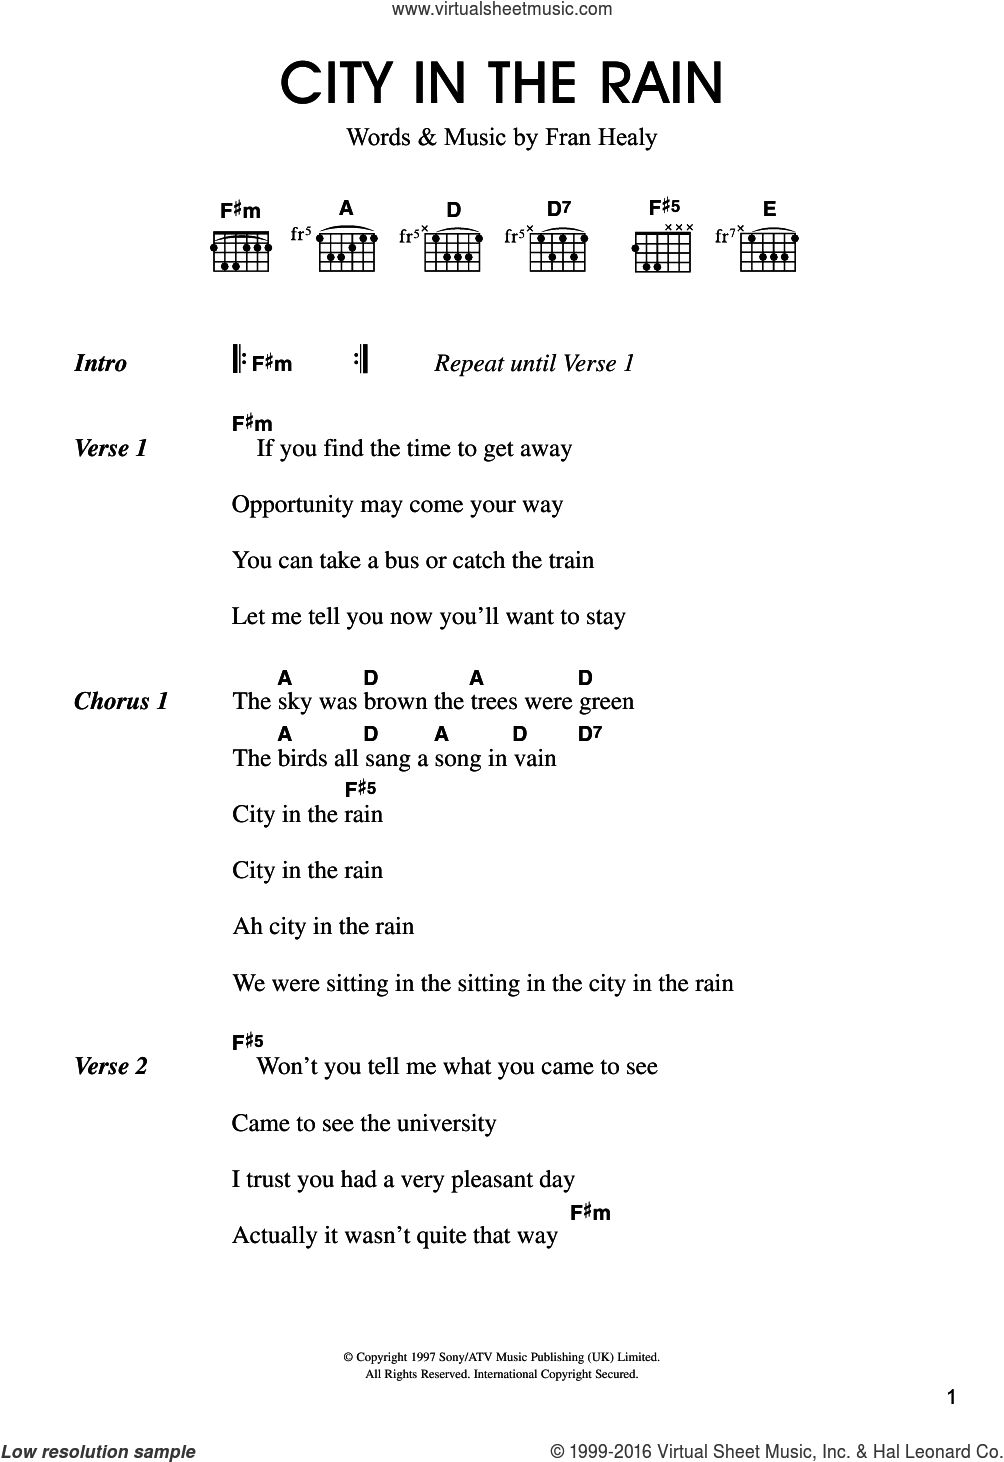 City In The Rain sheet music for guitar (chords) by Merle Travis and Fran Healy, intermediate skill level